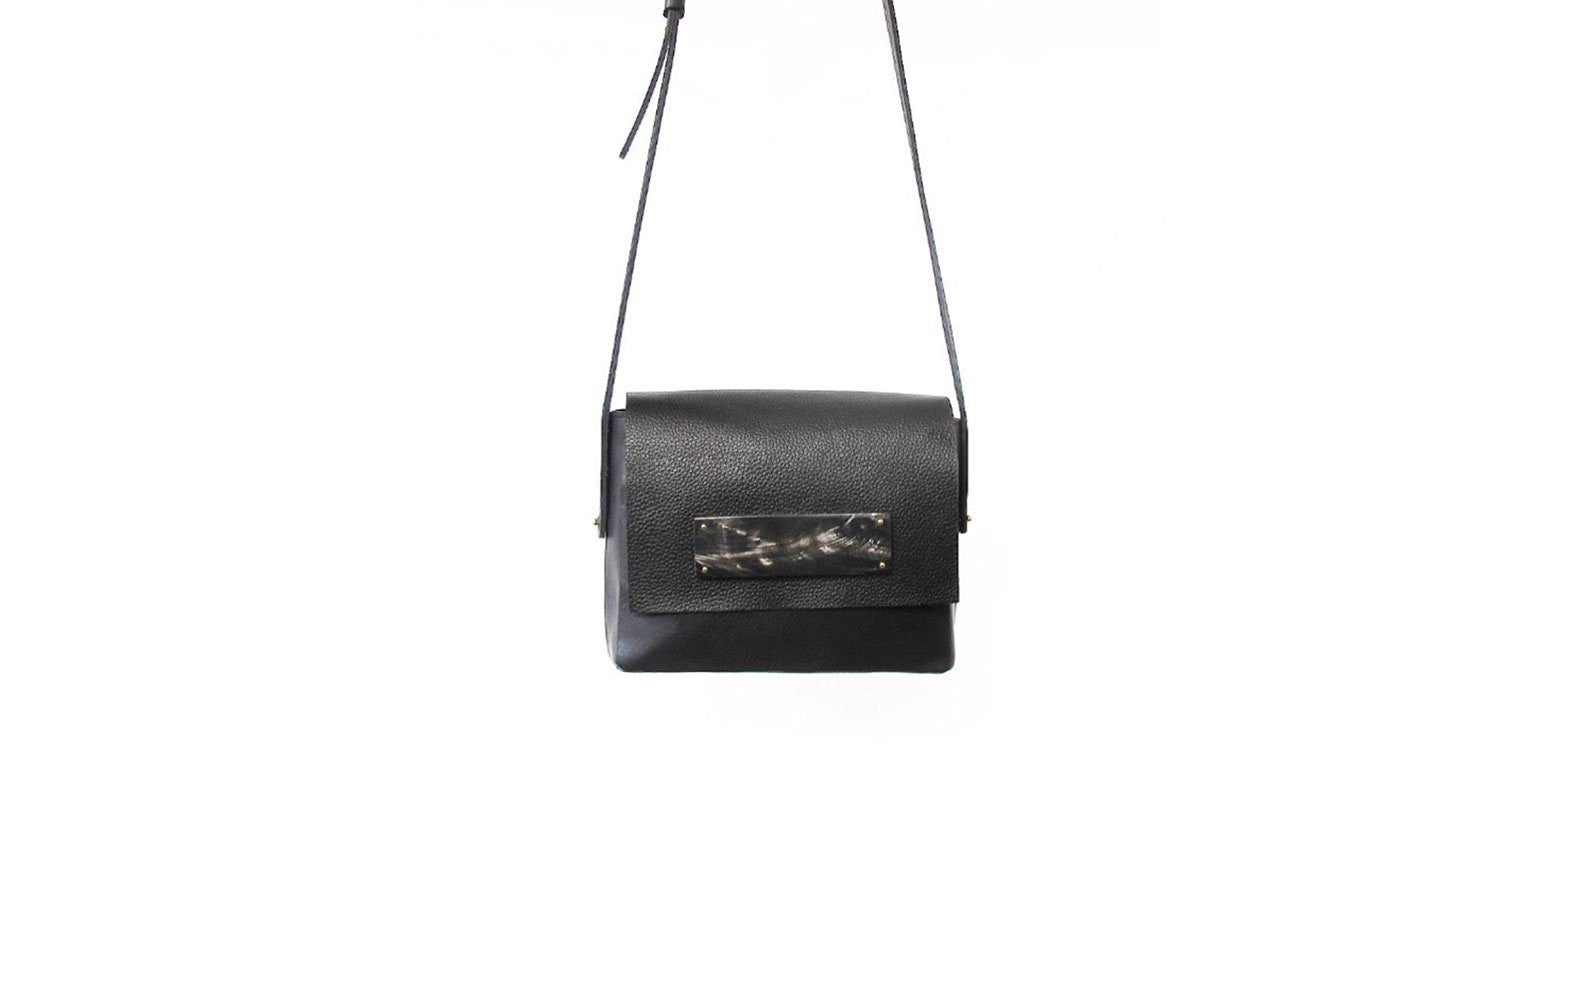 Romero Small Shoulder Bag